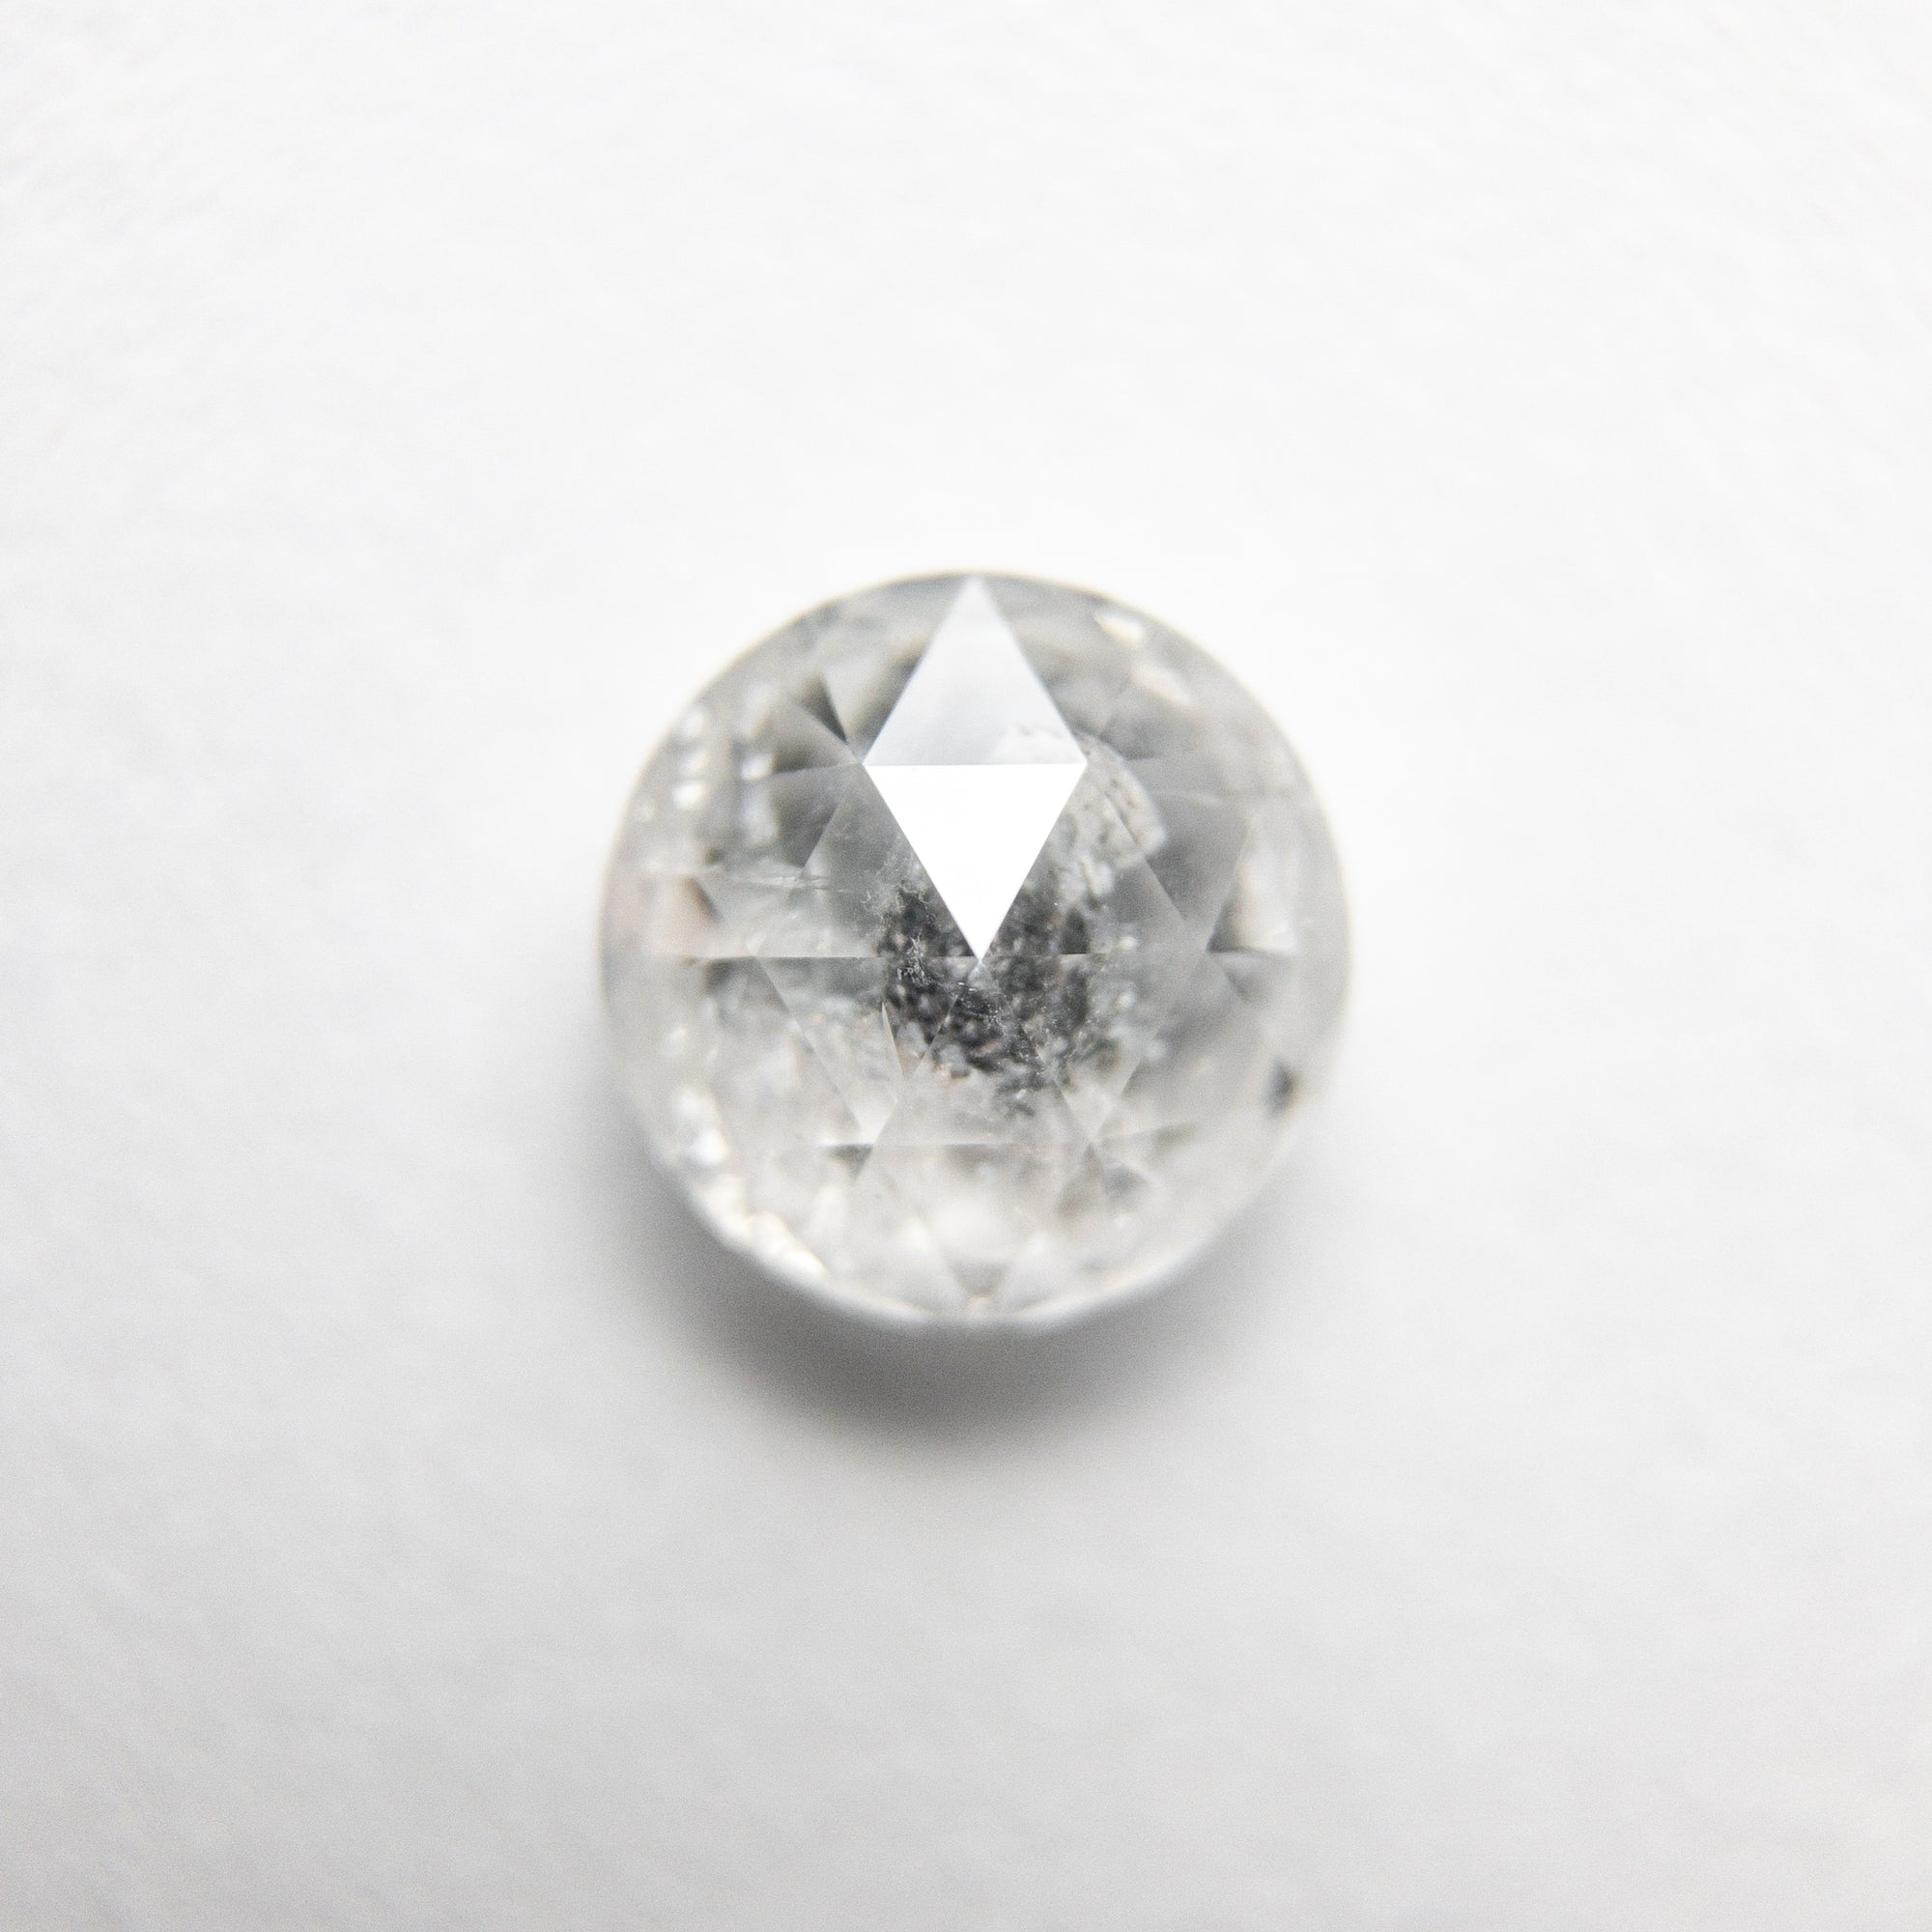 1.00ct 6.26x6.24x3.32mm Round Double Cut 18094-24